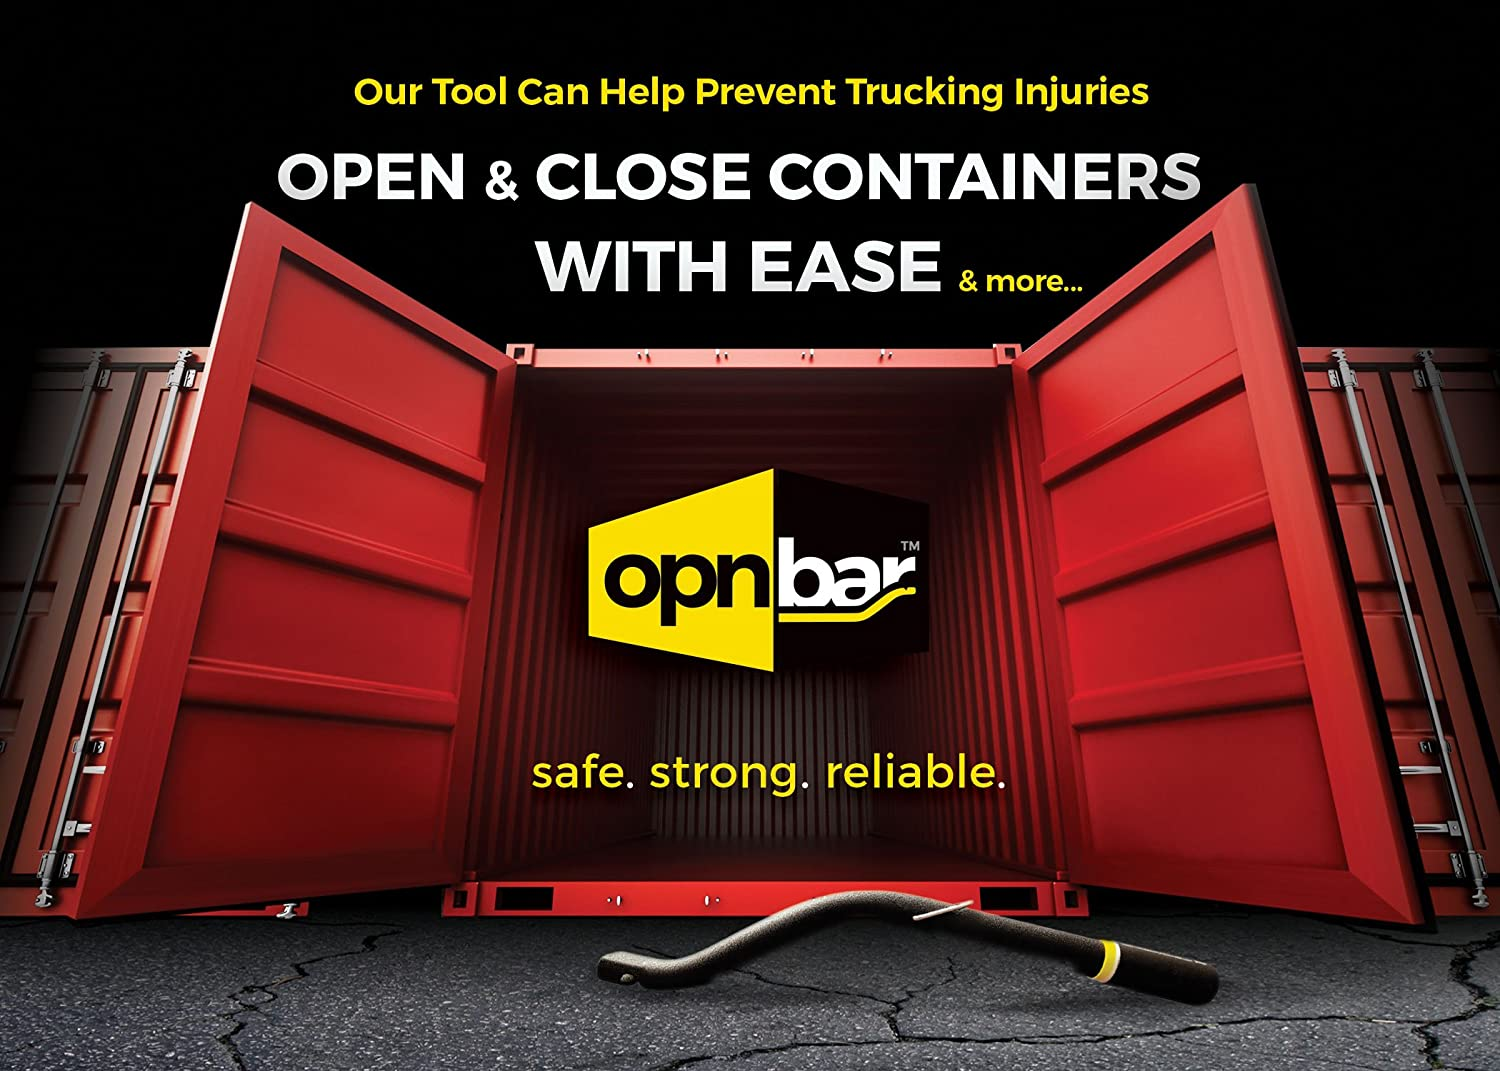 Steel Pin Puller Shipping Container Safety International 6f706e626174 5Th Wheel Hitch Release Handle and More 3 Trucker Tools in 1